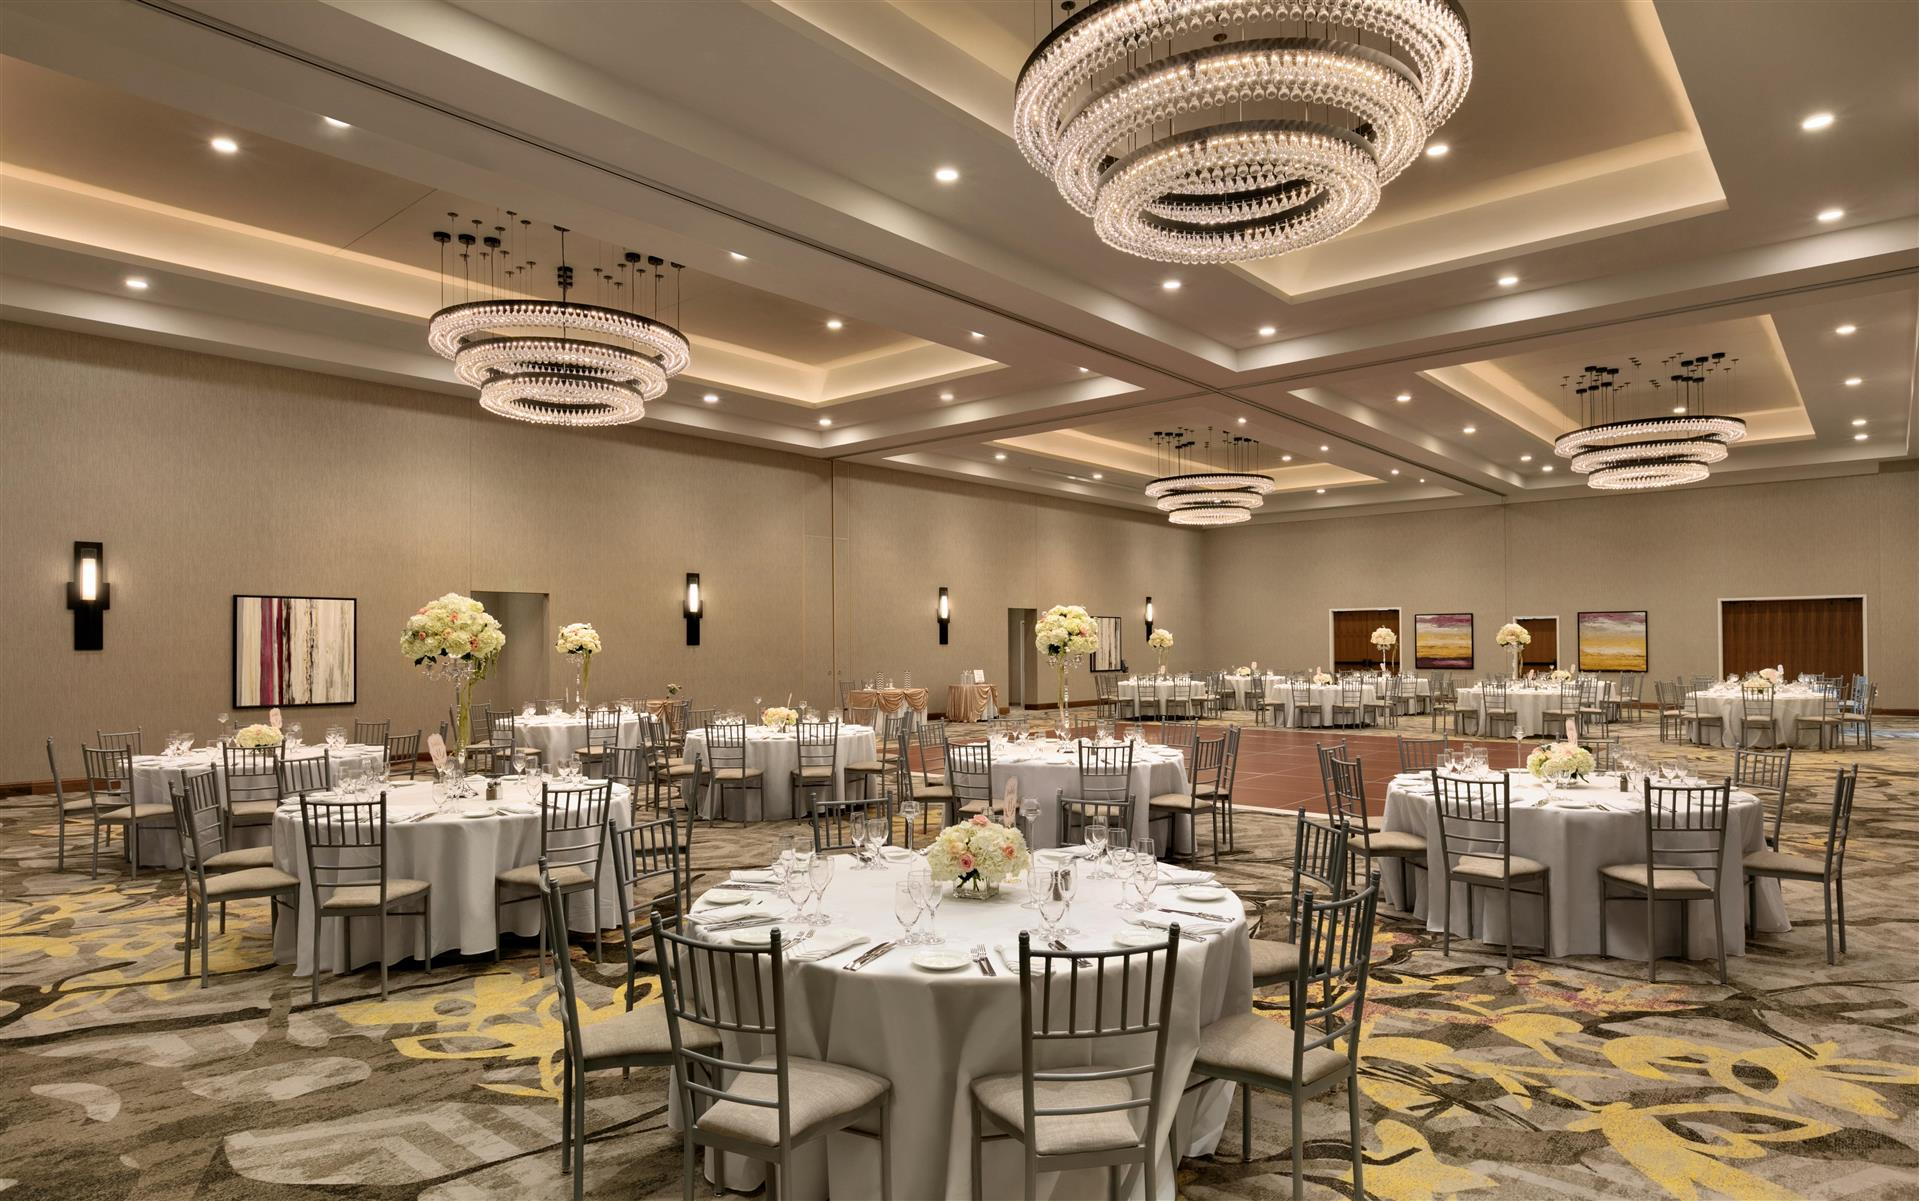 Pleasant Meetings And Events At Embassy Suites By Hilton Berkeley Gmtry Best Dining Table And Chair Ideas Images Gmtryco